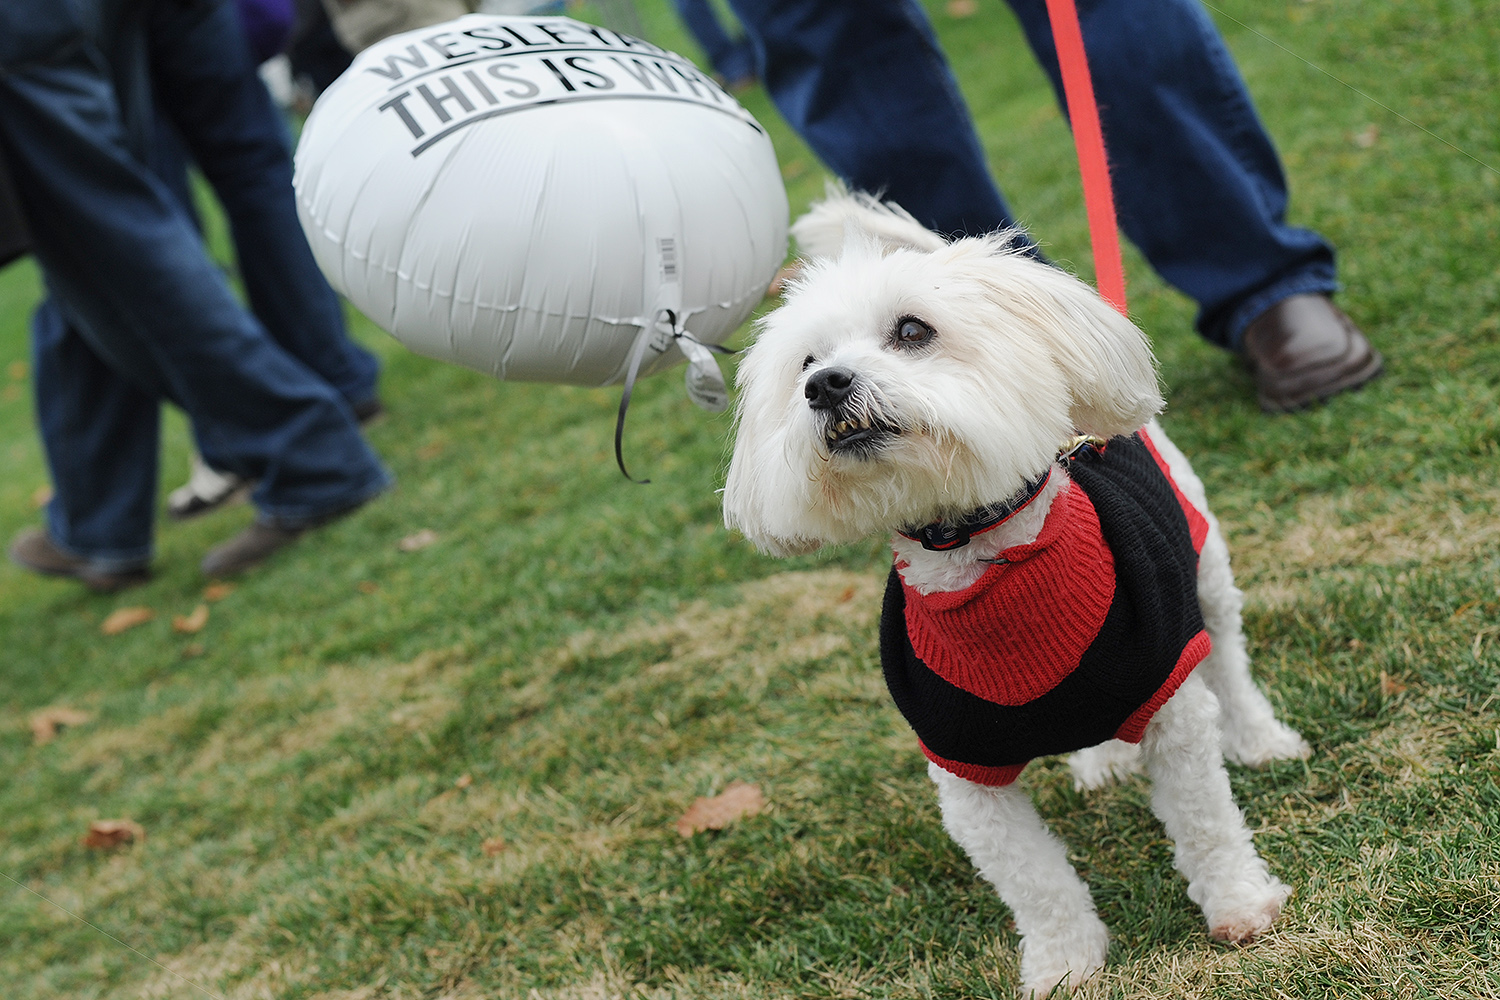 Dozens of furry friends also attended Homecoming/Family Weekend at Wesleyan. (Photo by Olivia Drake MALS '08)